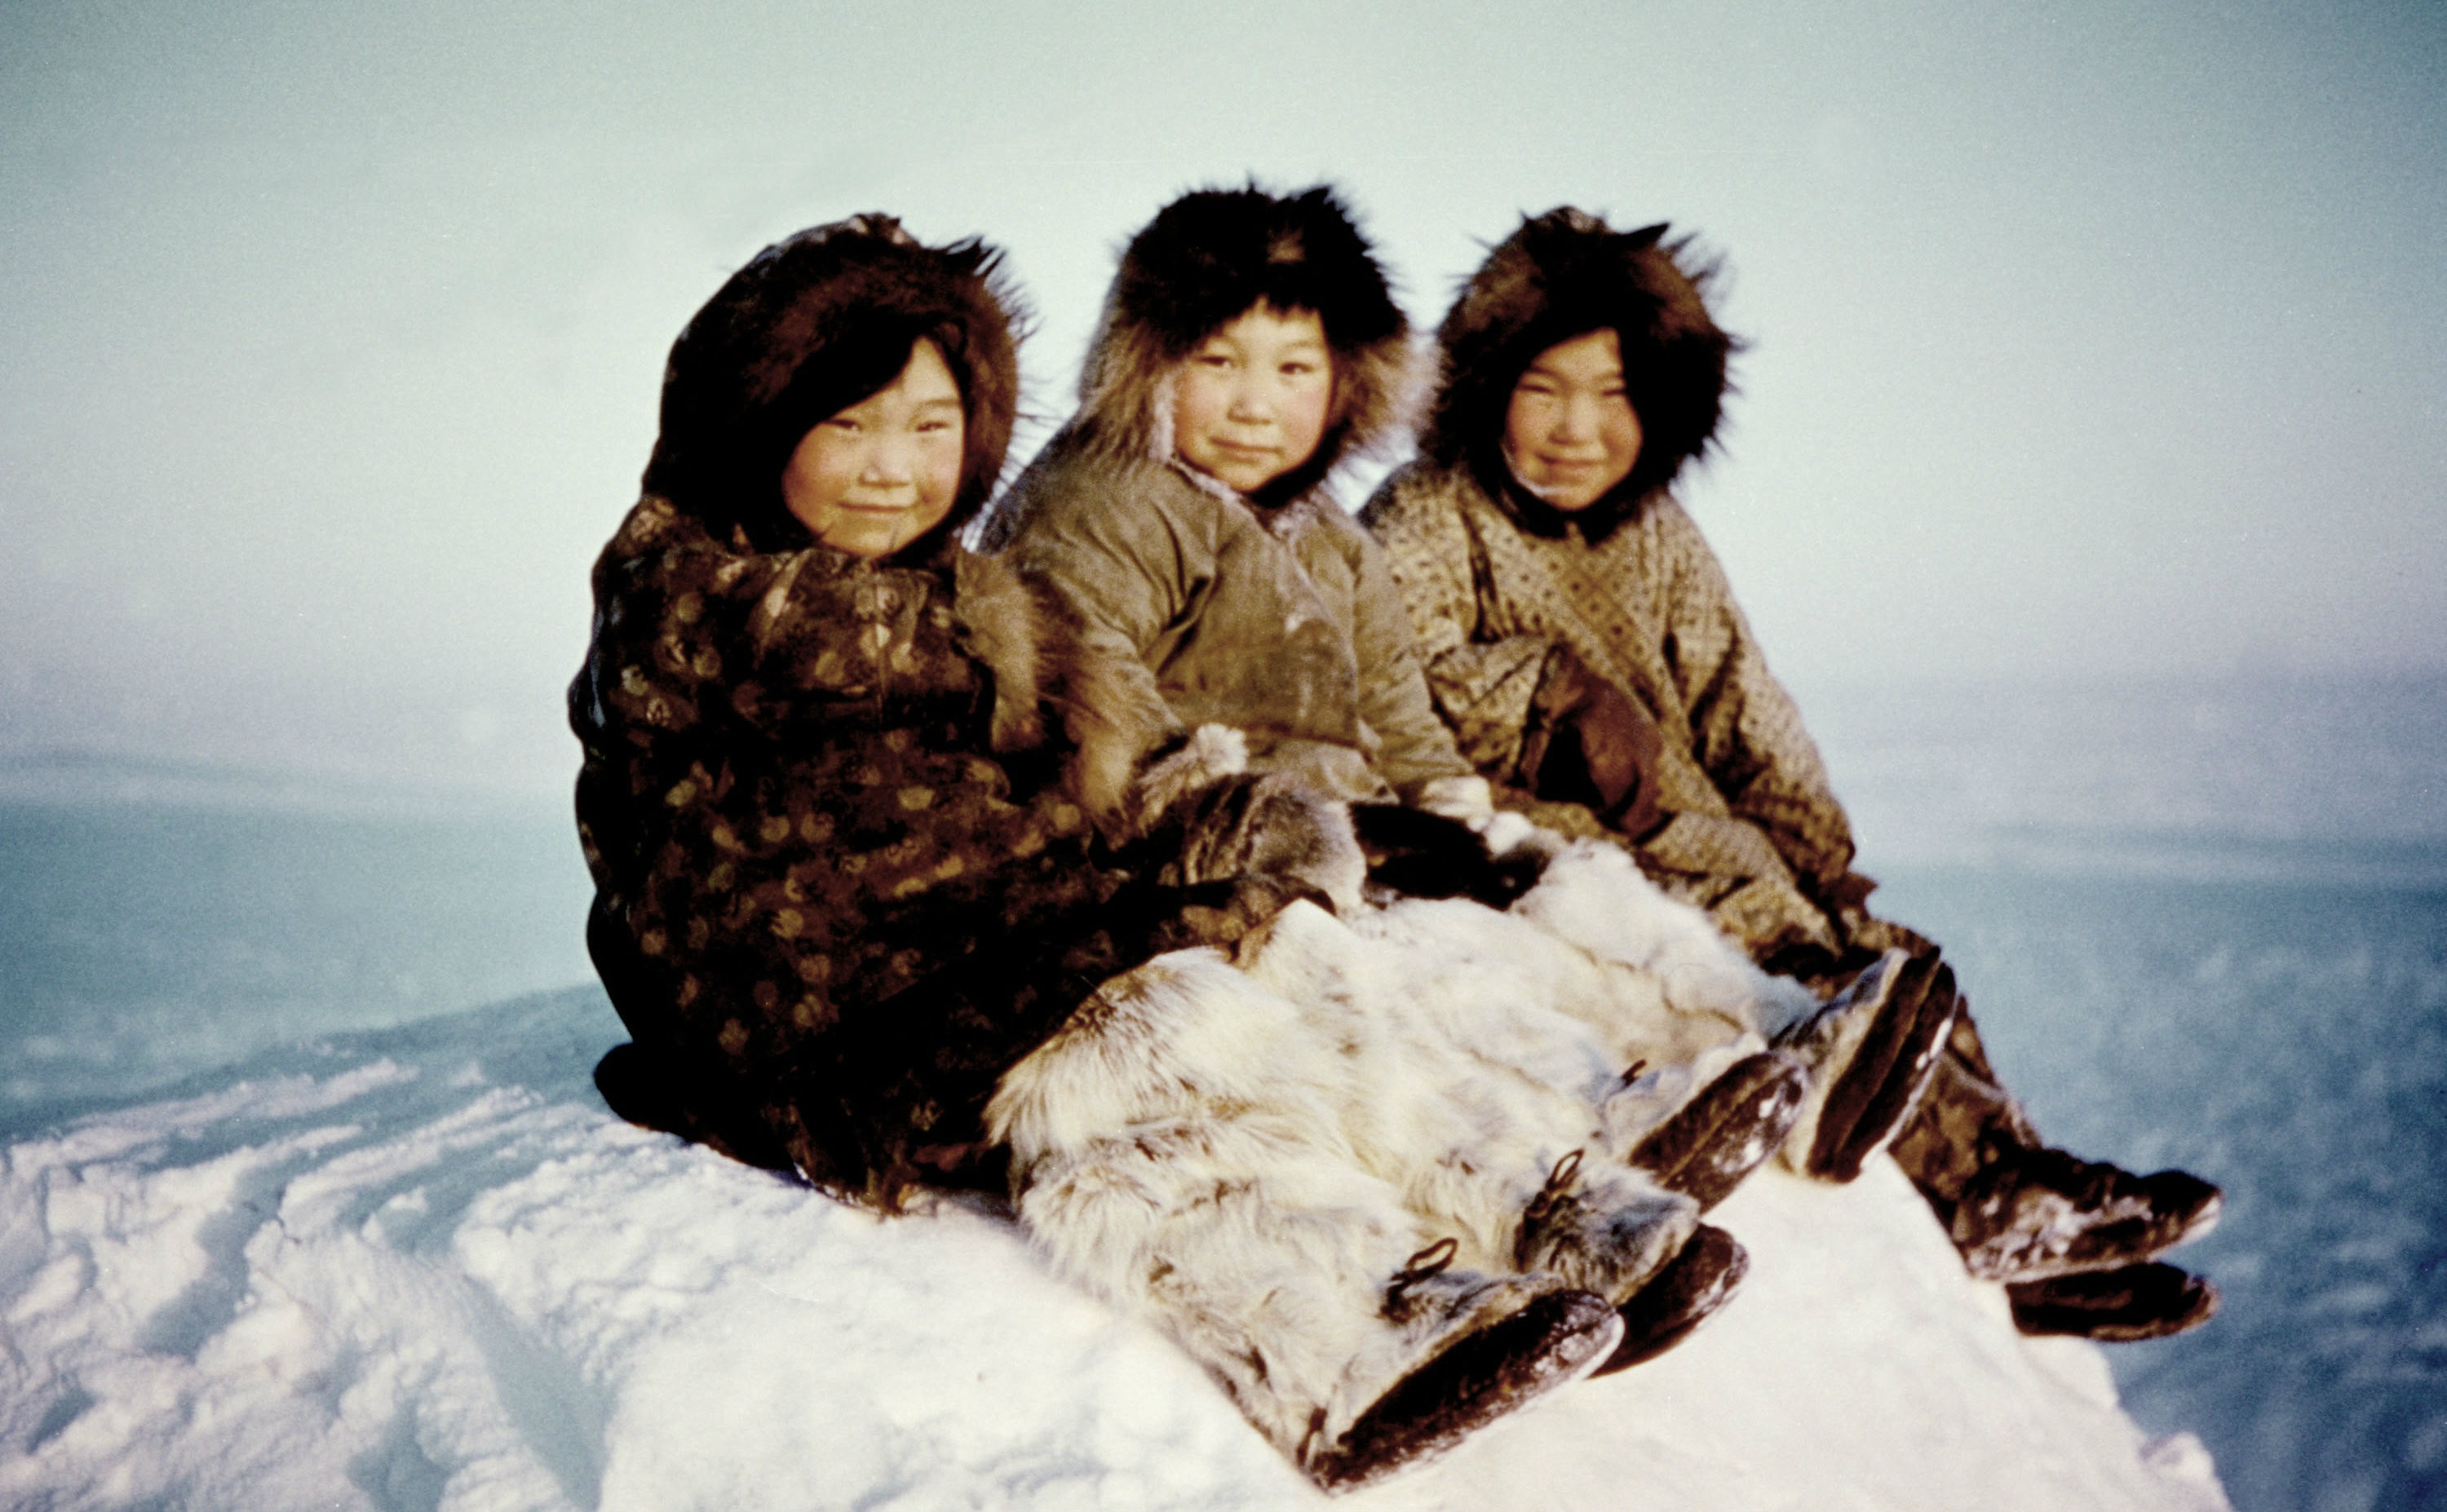 an overview of the native american people of inuit Native american tribes: the history and culture of the inuit (eskimos) ebook: charles river editors: amazonin: kindle store.